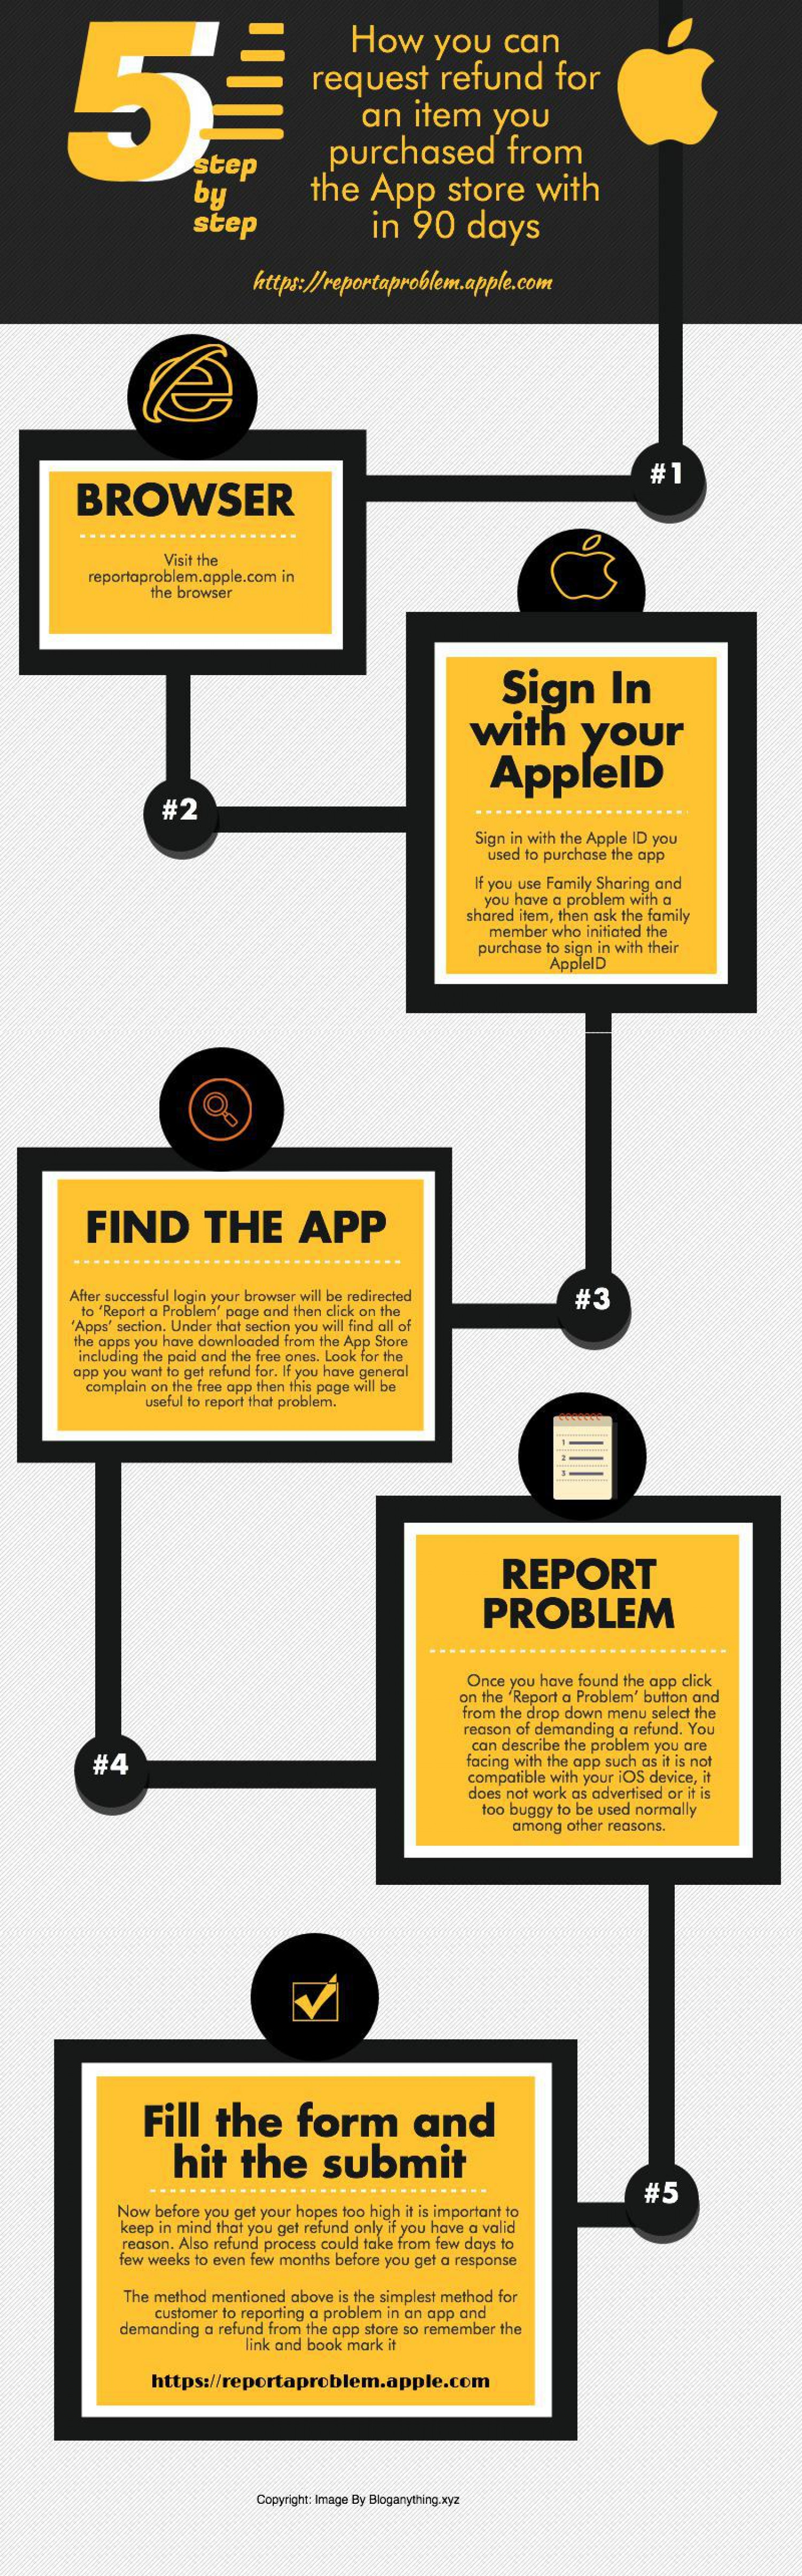 How to get refund for the purchases from the Apple app store Infographic